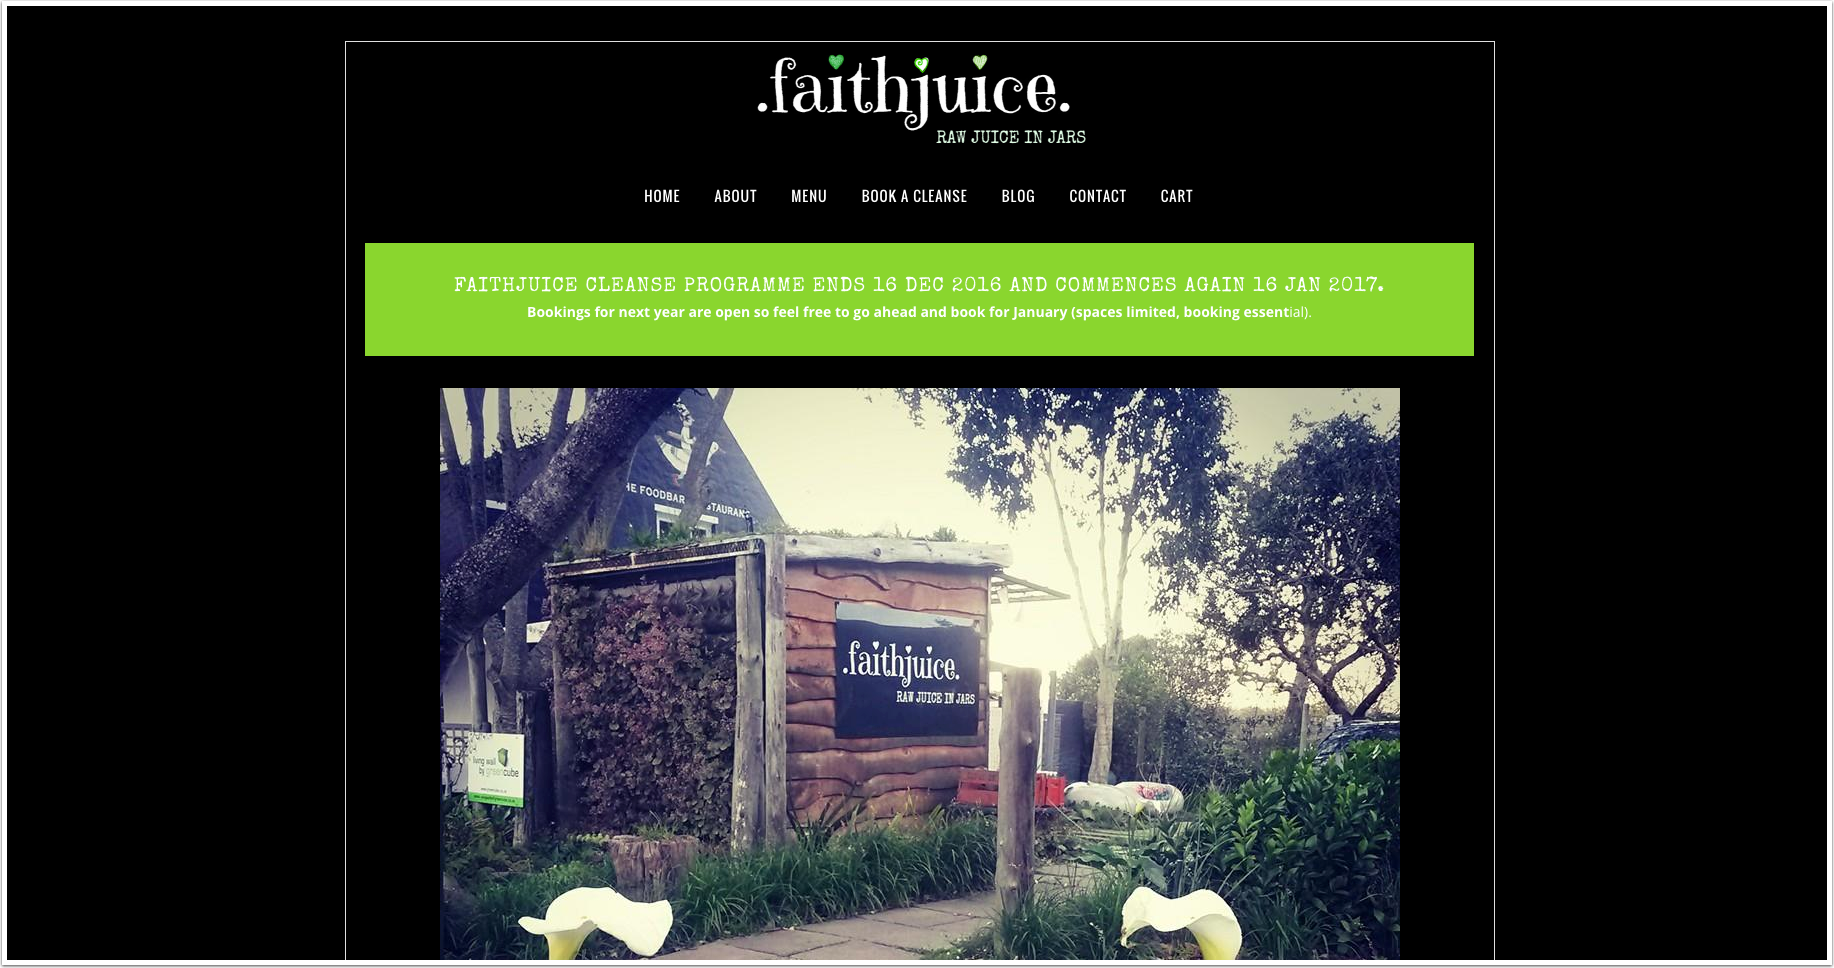 Faithjuice Raw Juice In Jars